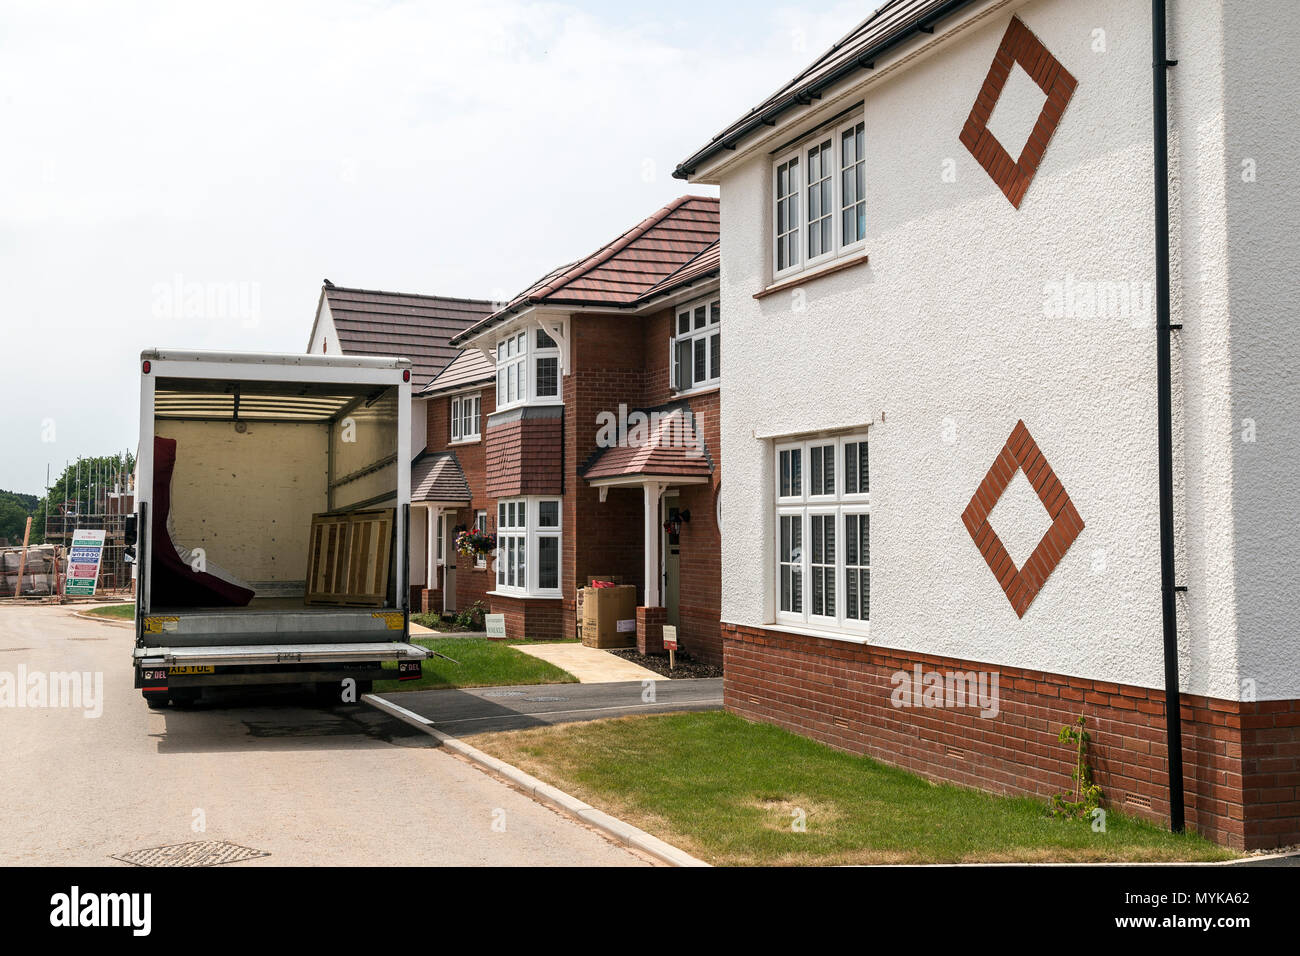 UK's fastest growing house builder, UK's leading residential housing developers, thriving communities, building responsibly,Redrow West Country, movin - Stock Image